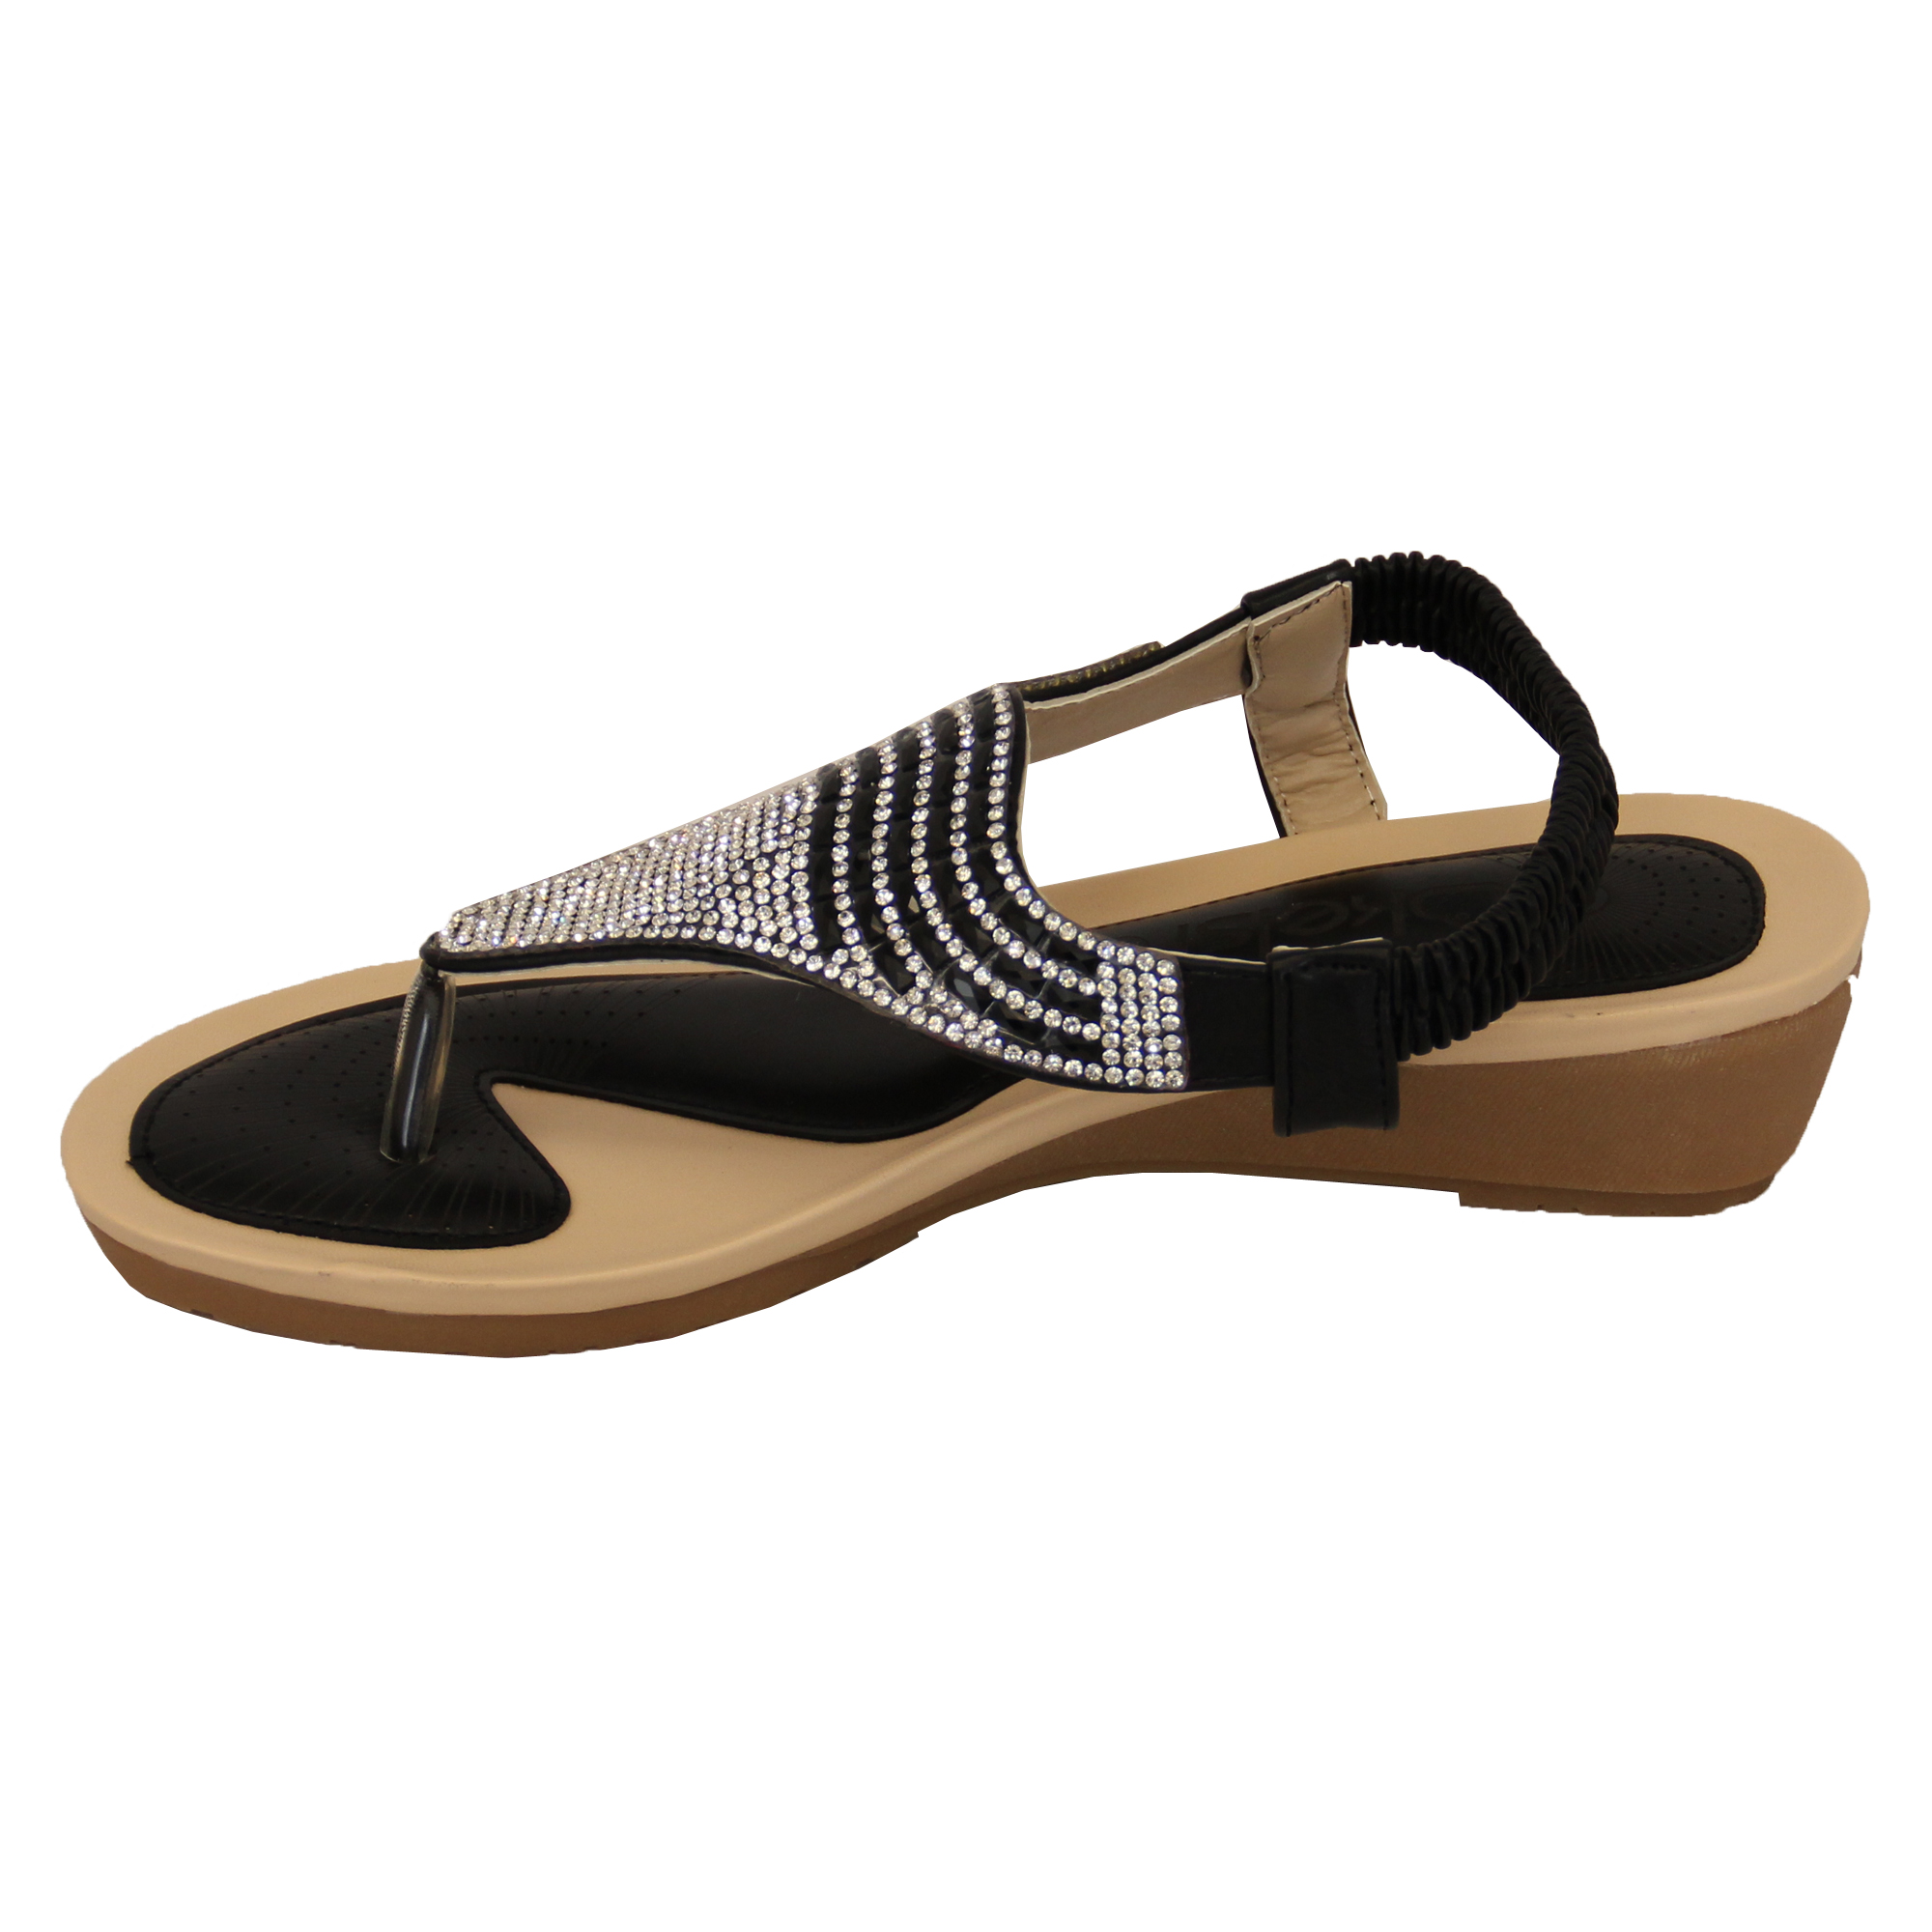 Ladies-Sandals-Kelsi-Womens-Diamante-Slip-On-Toe-Post-Shoes-Casual-Fashion-New thumbnail 7